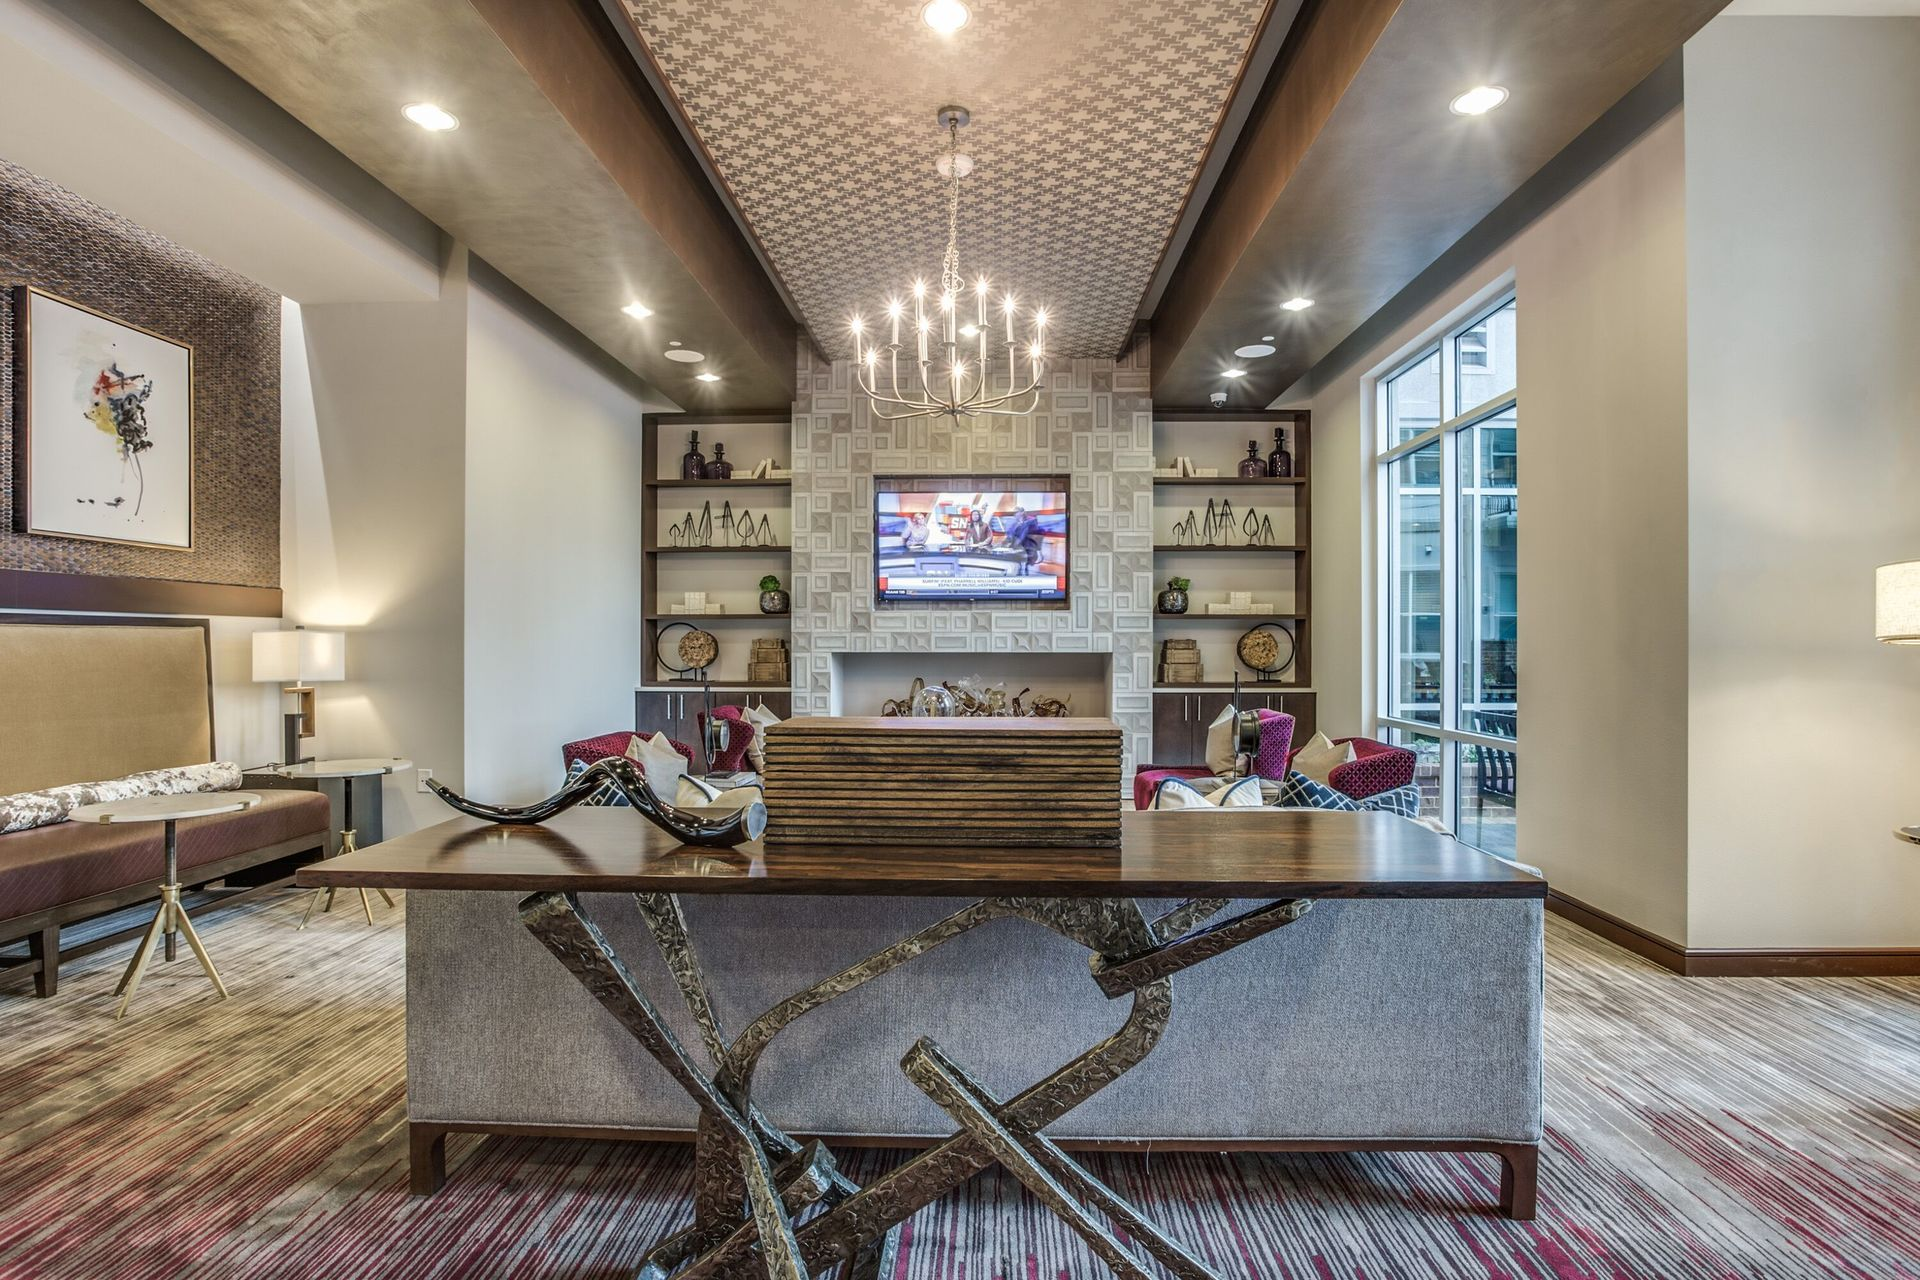 Luxury residence lounge at Stella apartments located in Dallas, TX, by Hensley Lamkin Rachel.